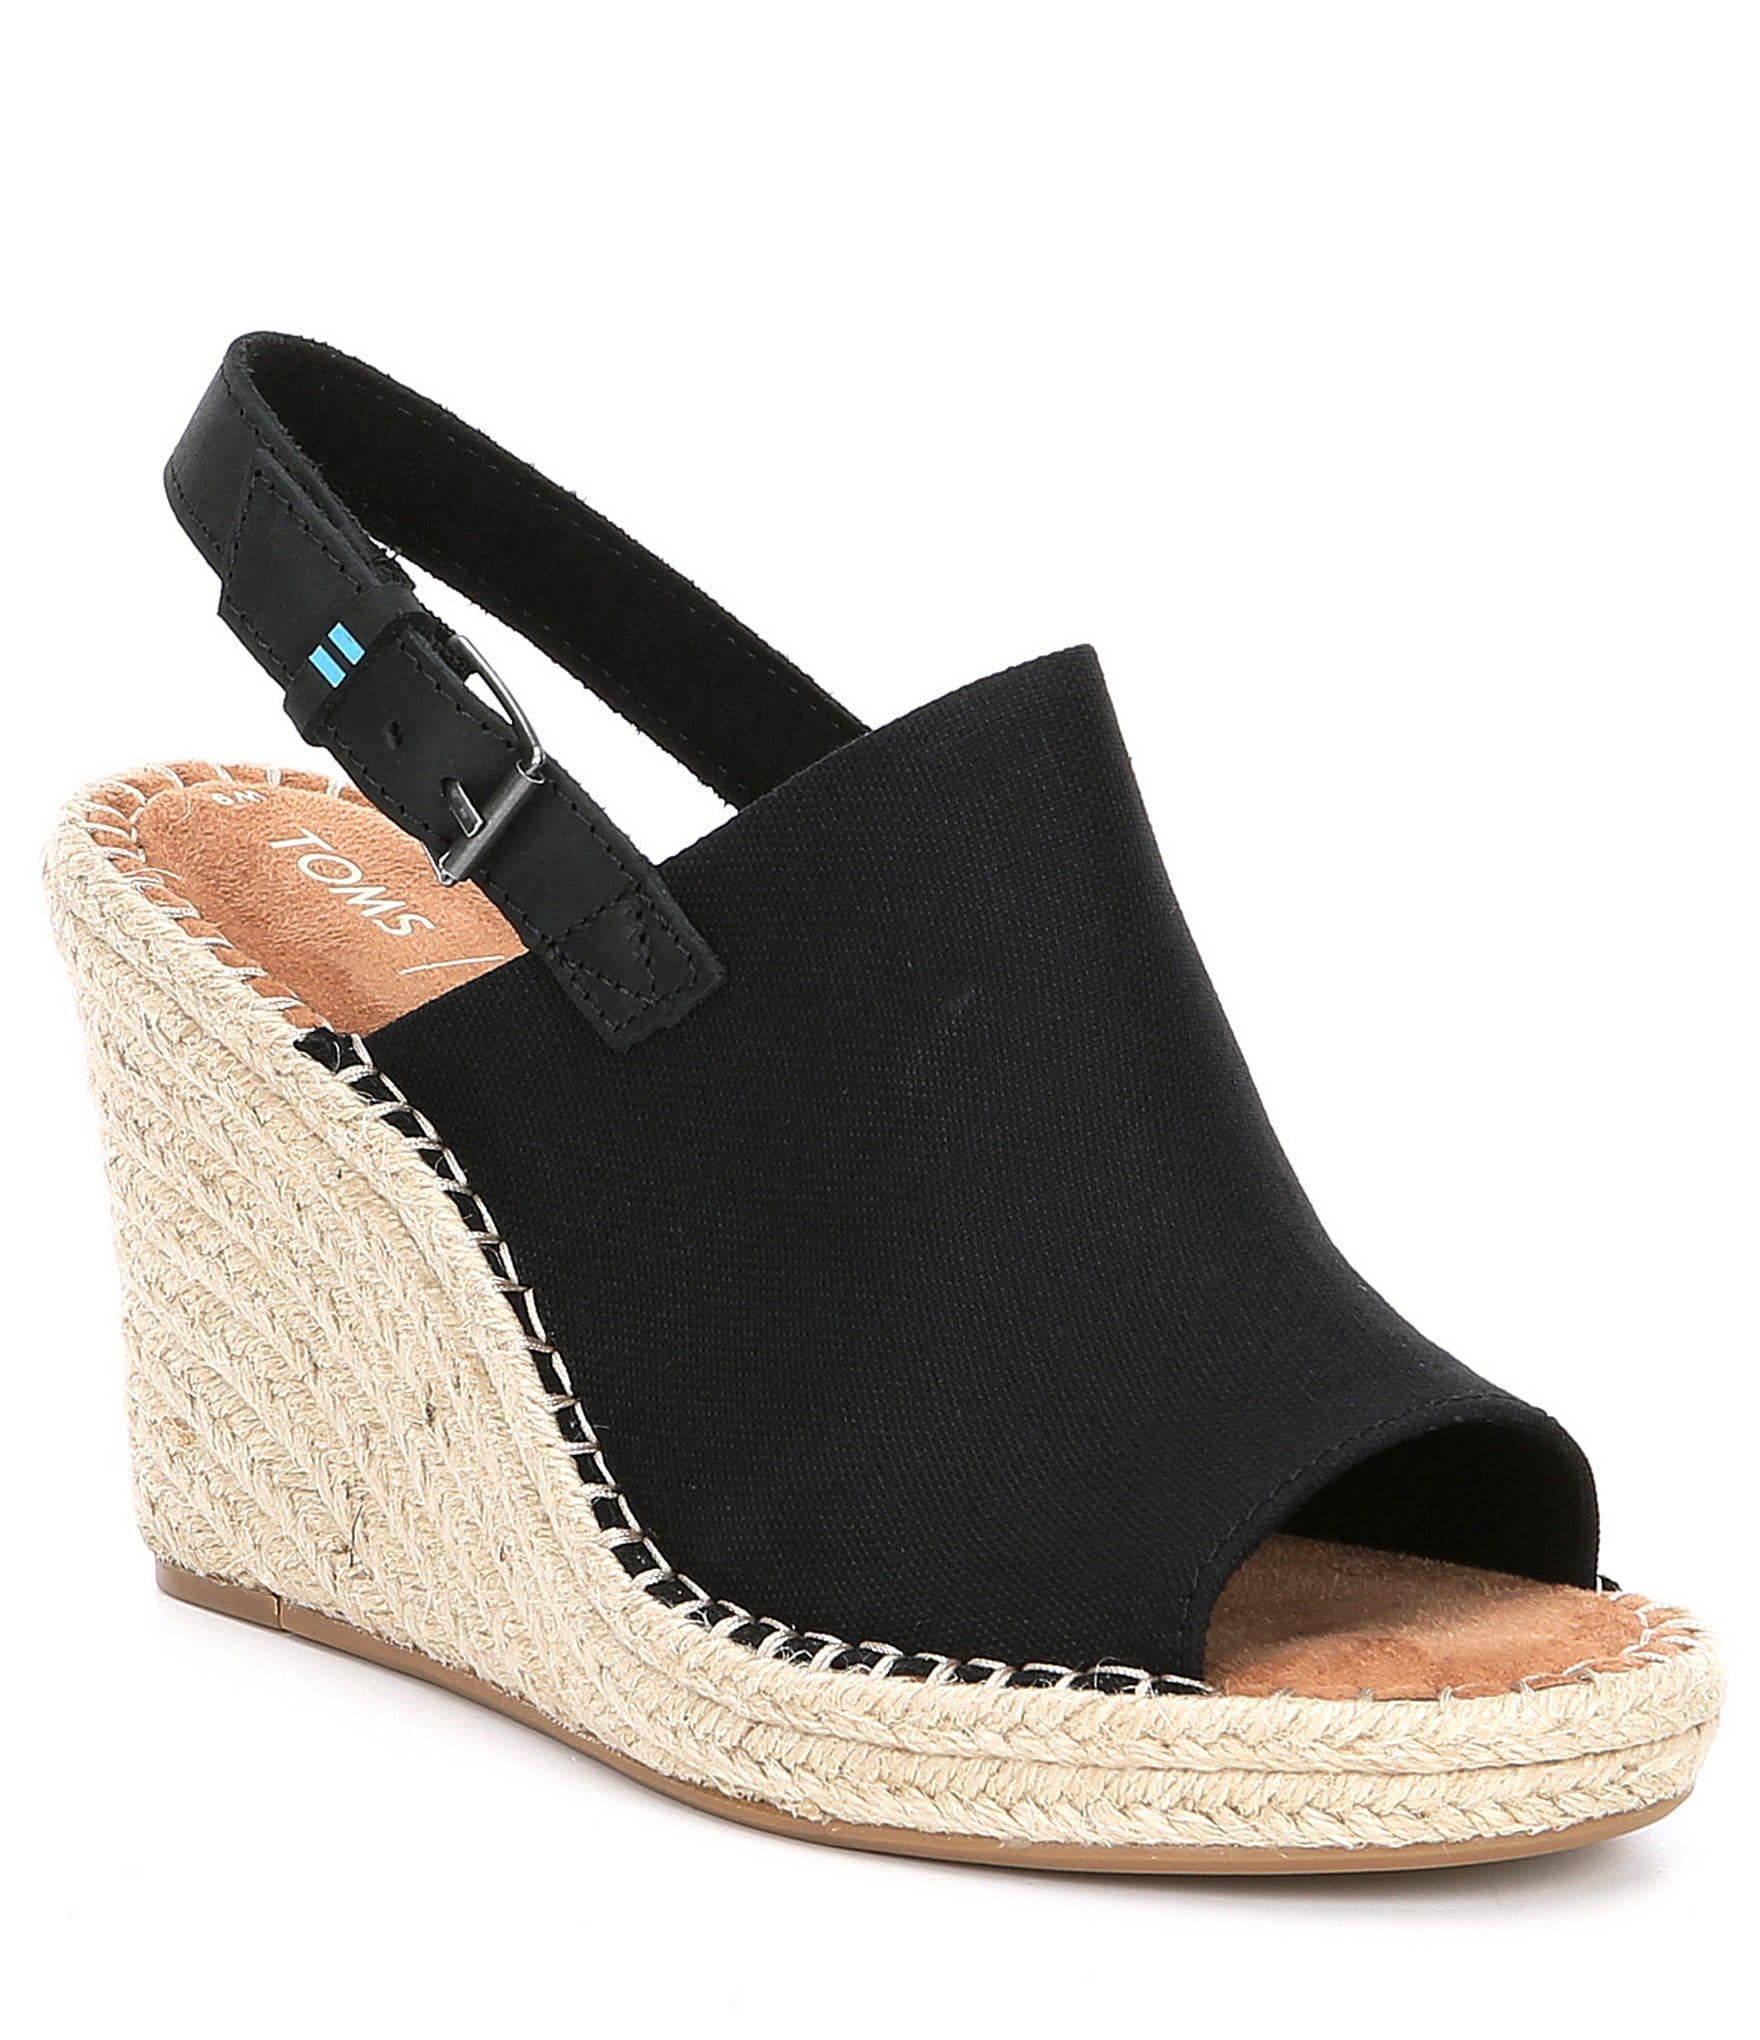 608bd97c51 TOMS Shoes | Dillard's